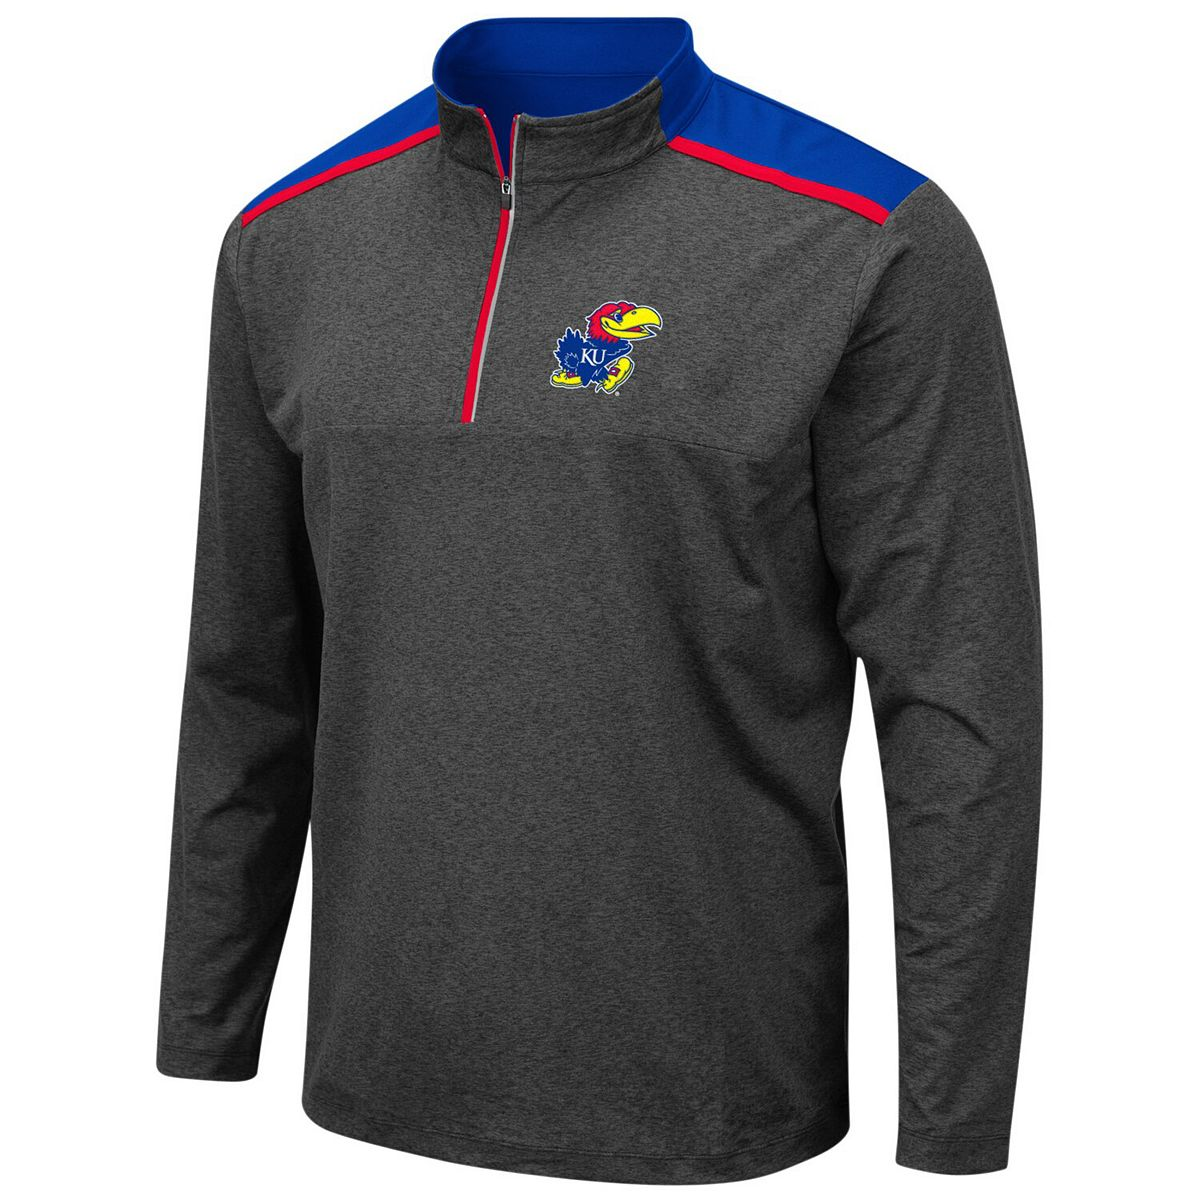 Men's Colosseum Heathered Charcoal Kansas Jayhawks Snowball Windshirt Quarter-Zip Pullover Jacket 6rFsr